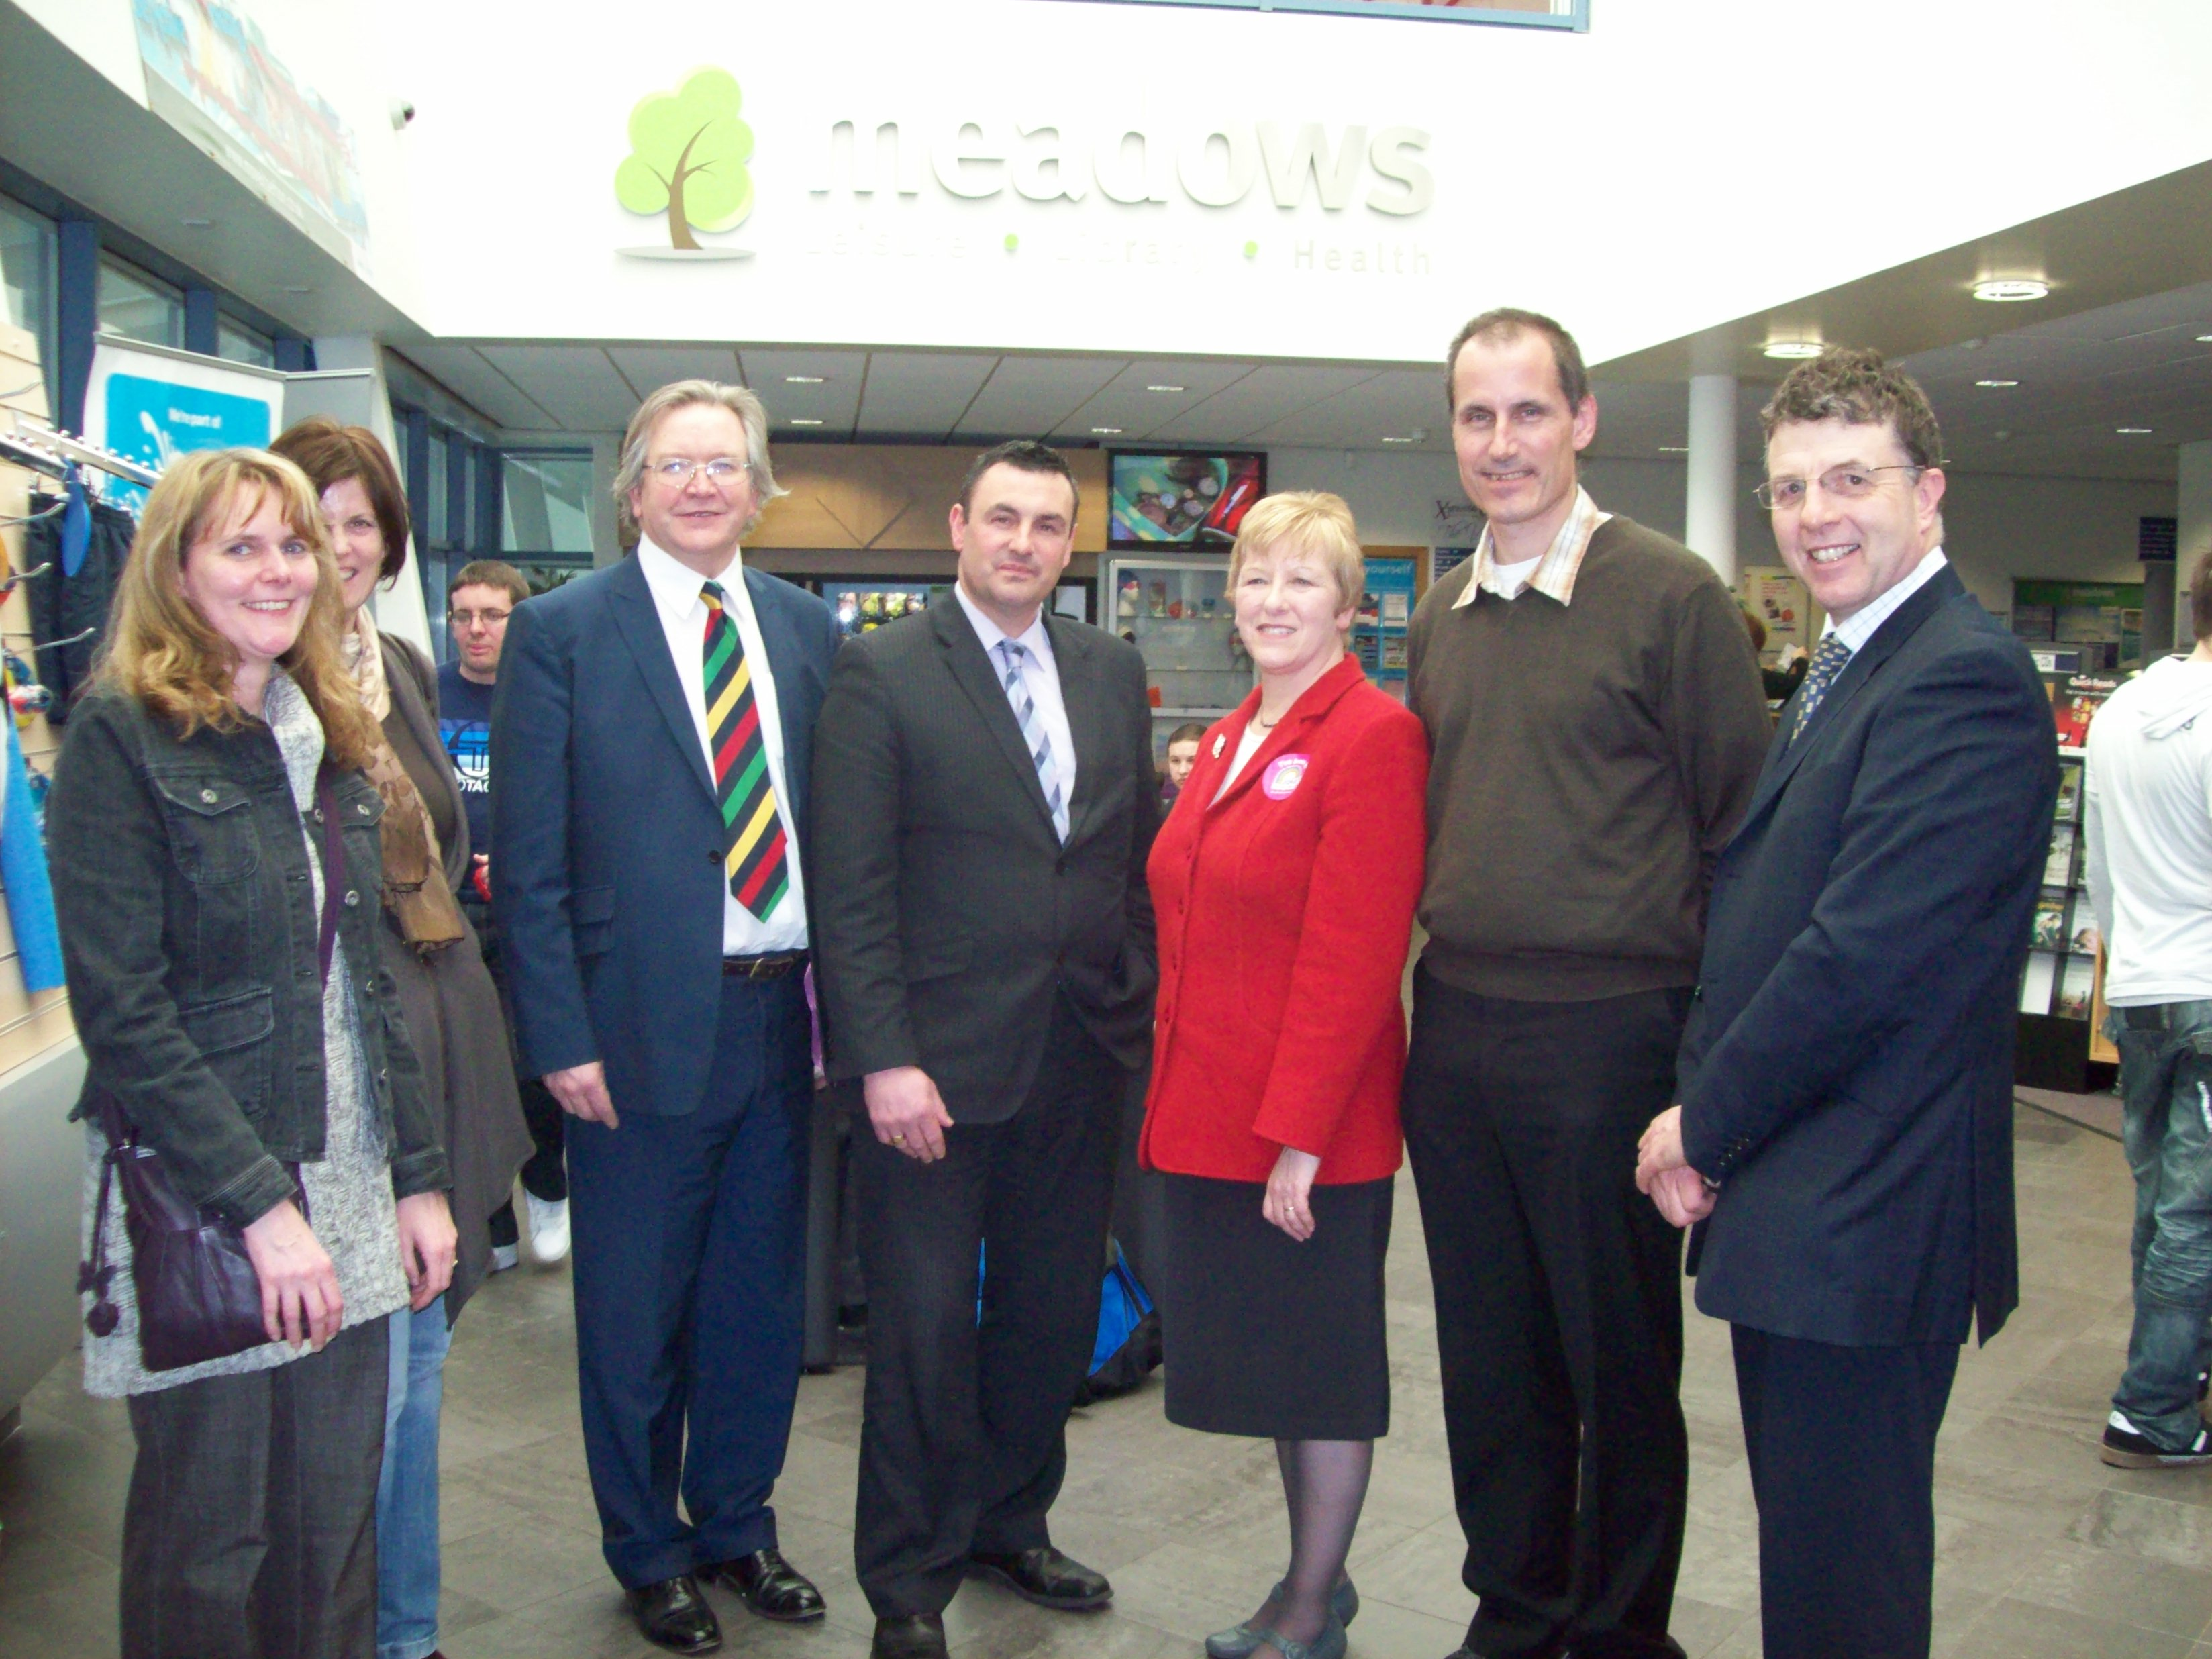 Labour's Shadow Minister for Communities and Local Government Helen Jones MP, Sefton Central Labour MP Bill Esterson and Sefton Council Labour leader Cllr Peter Dowd hear about Maghull's Support Our Shops campaign from business owner Steve Maxwell, Cllr Steve Kermode, Cllr Gwen Kermode and Lynn Gatherer.